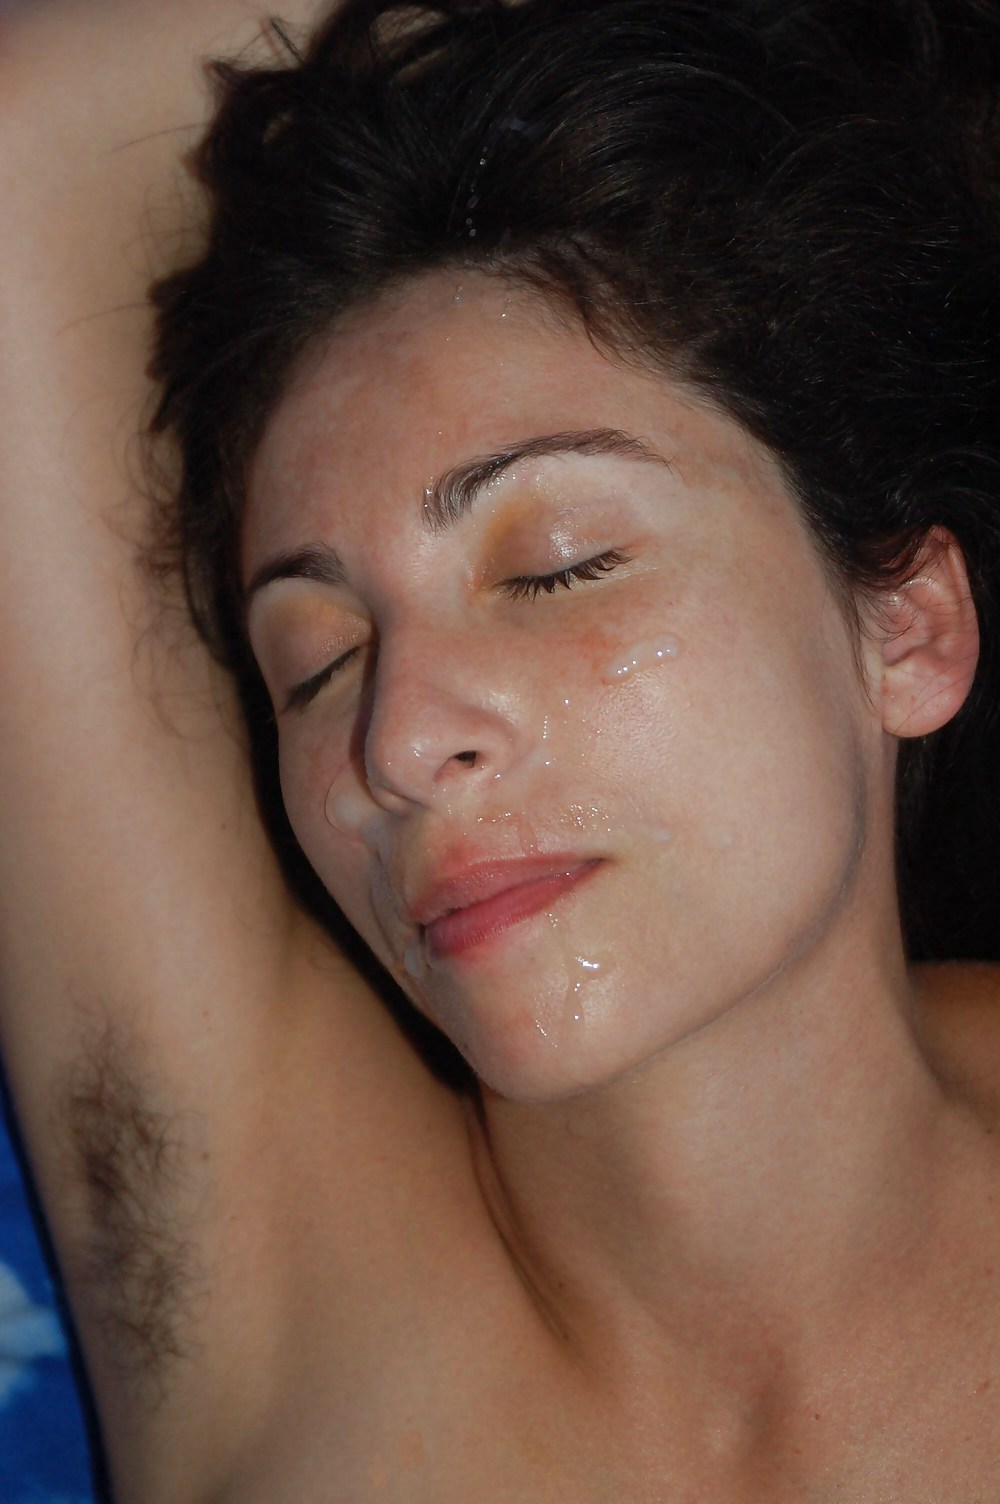 Amateur Hairy Armpits Spreading - Pits - Love Is In The -4127